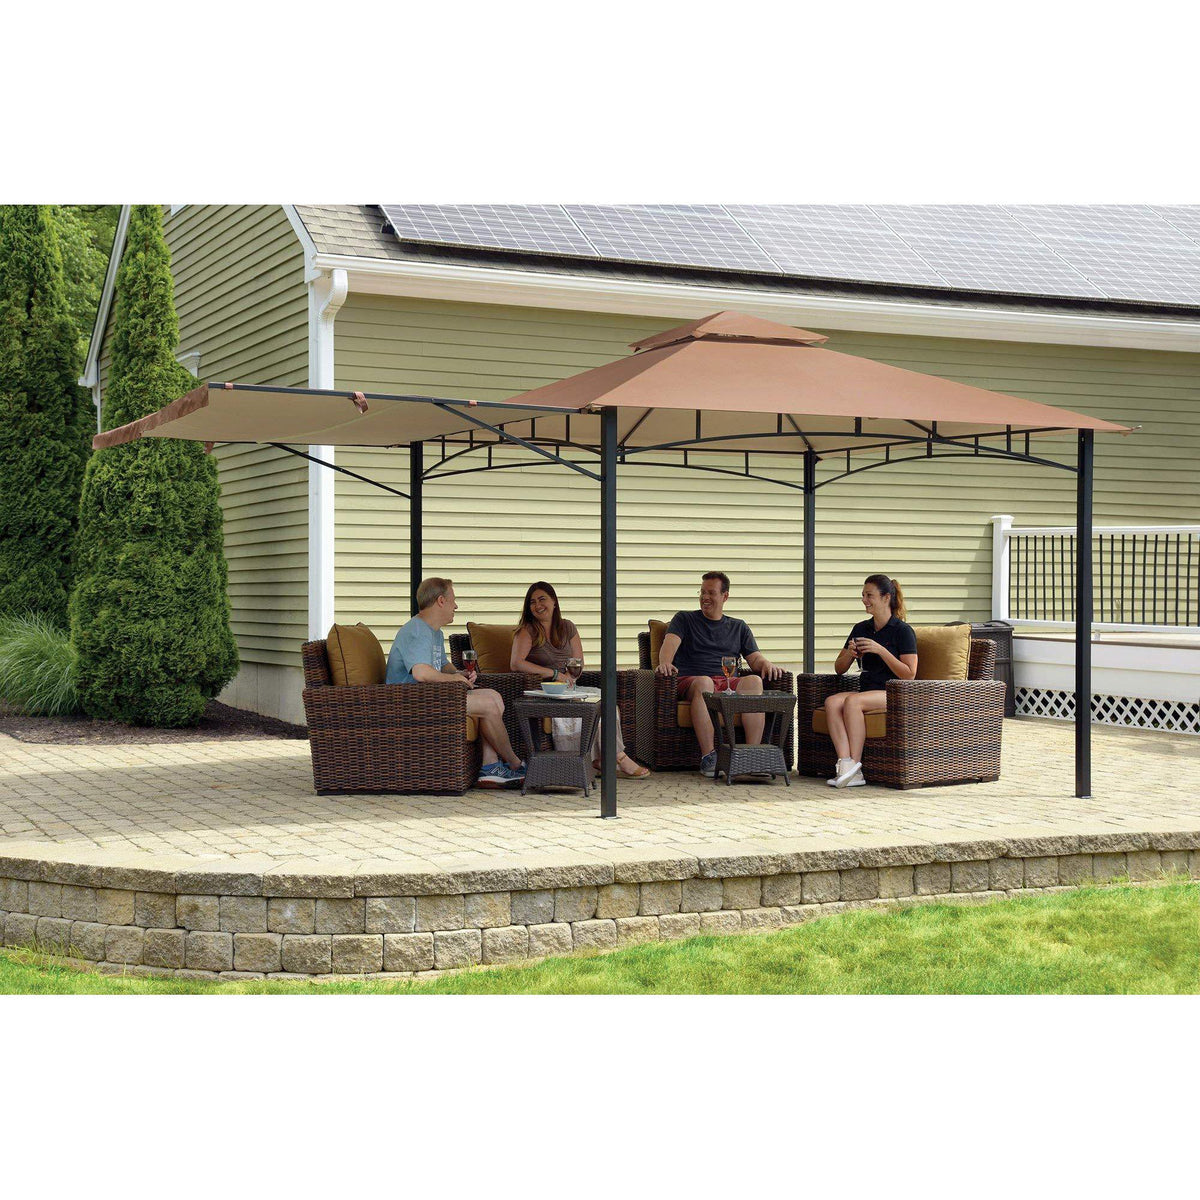 ShelterLogic Canopy Series Redwood 11 x 11-Foot Easy Assembly Seasonal Shade UV Protection with Extendable Awning Outdoor Gazebo, x 11'